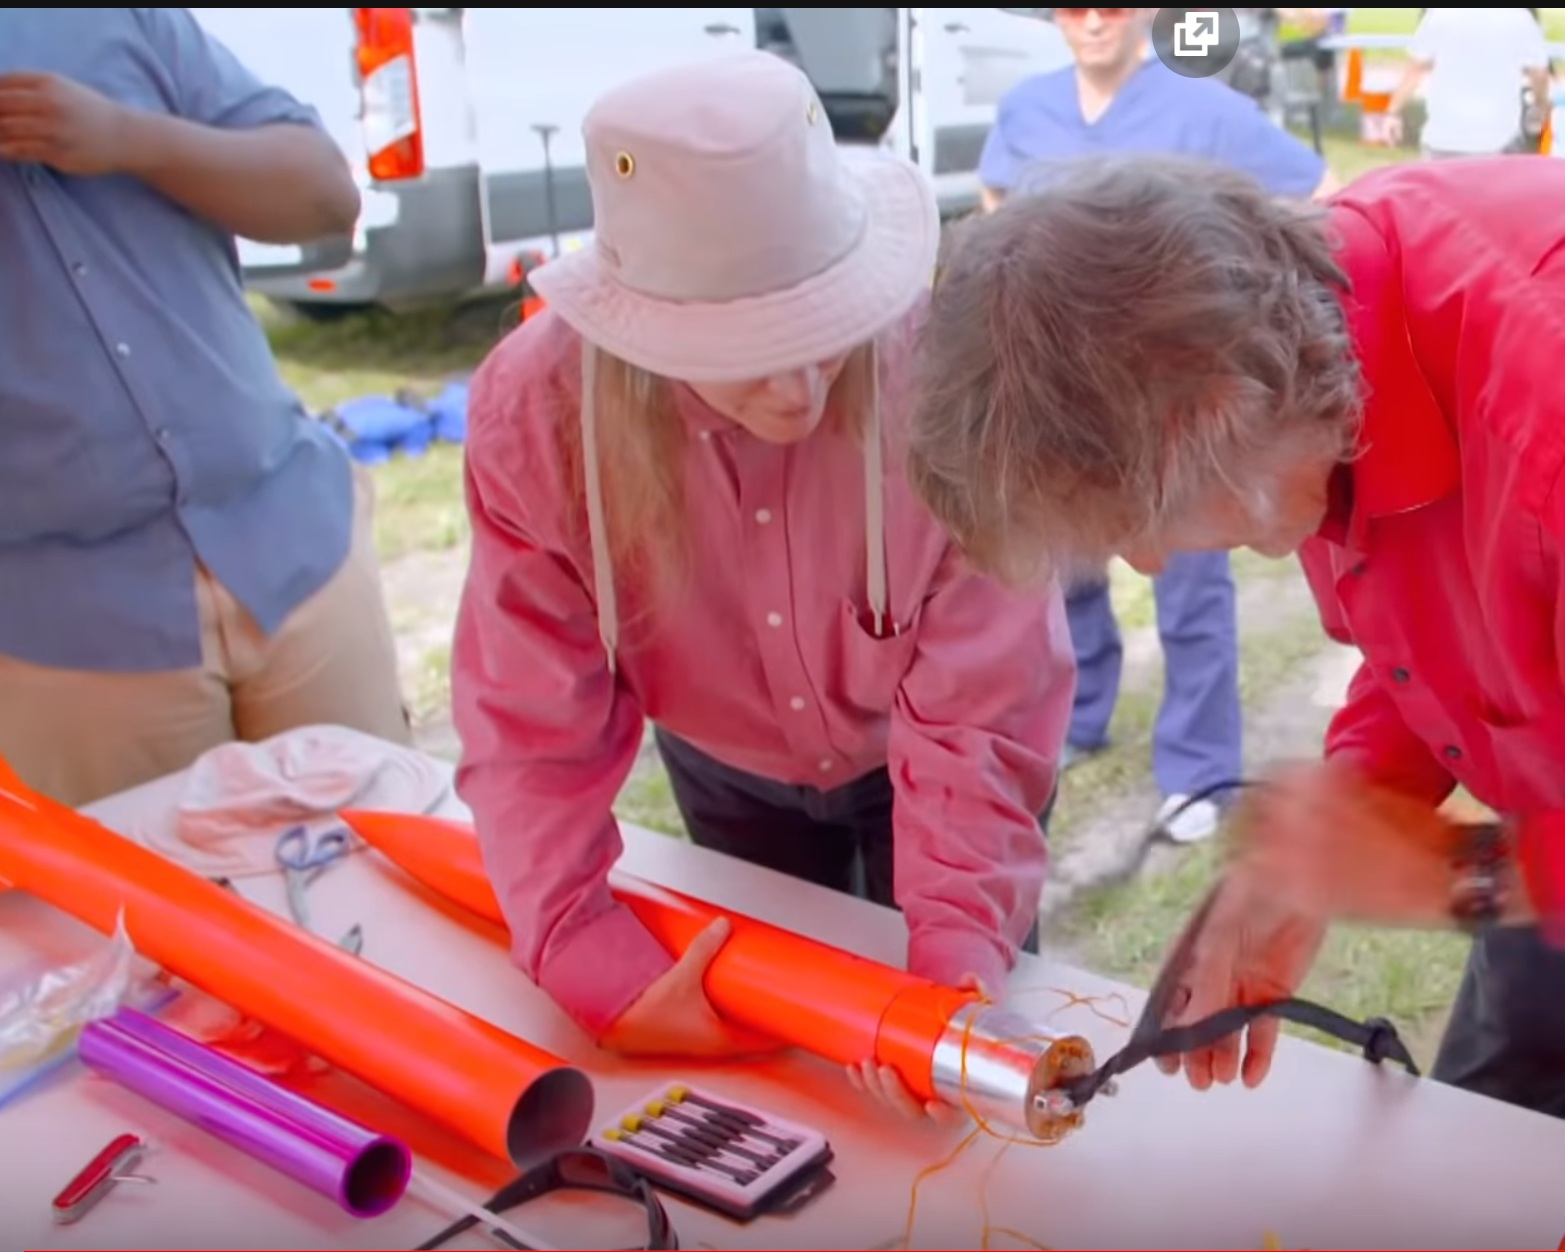 Inserting electronics into rocket - Courtesy of the Discovery Channel